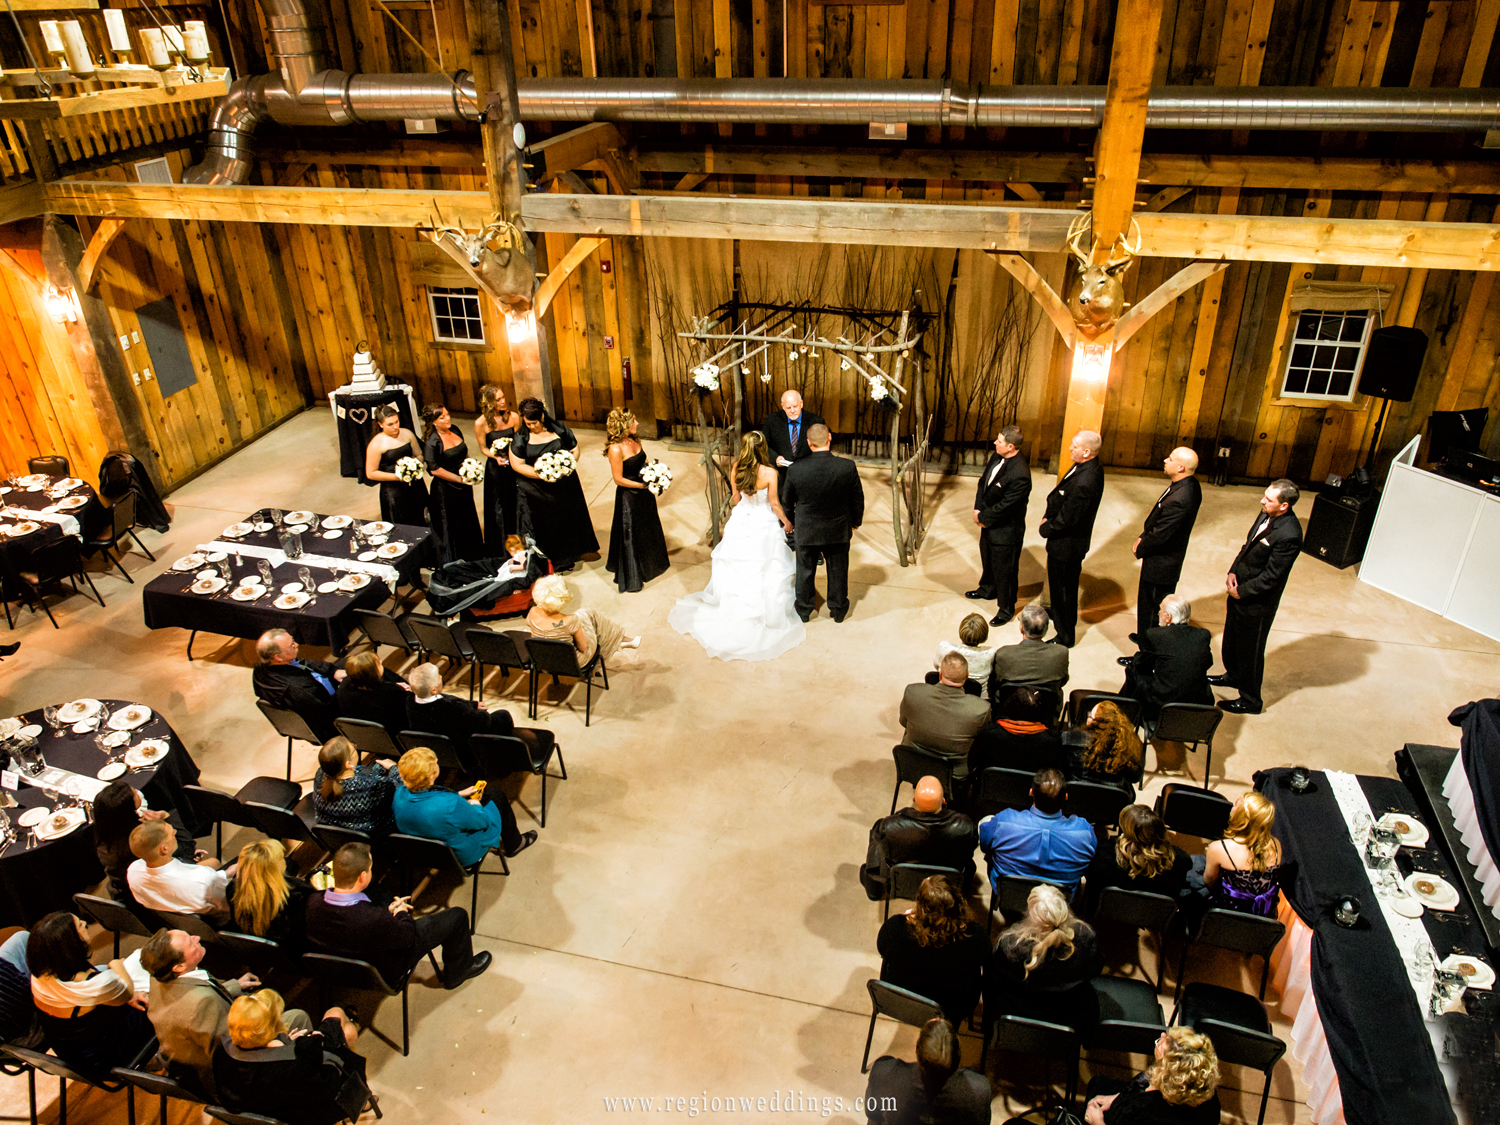 View of a wedding ceremony from the balcony at County Line Orchard.